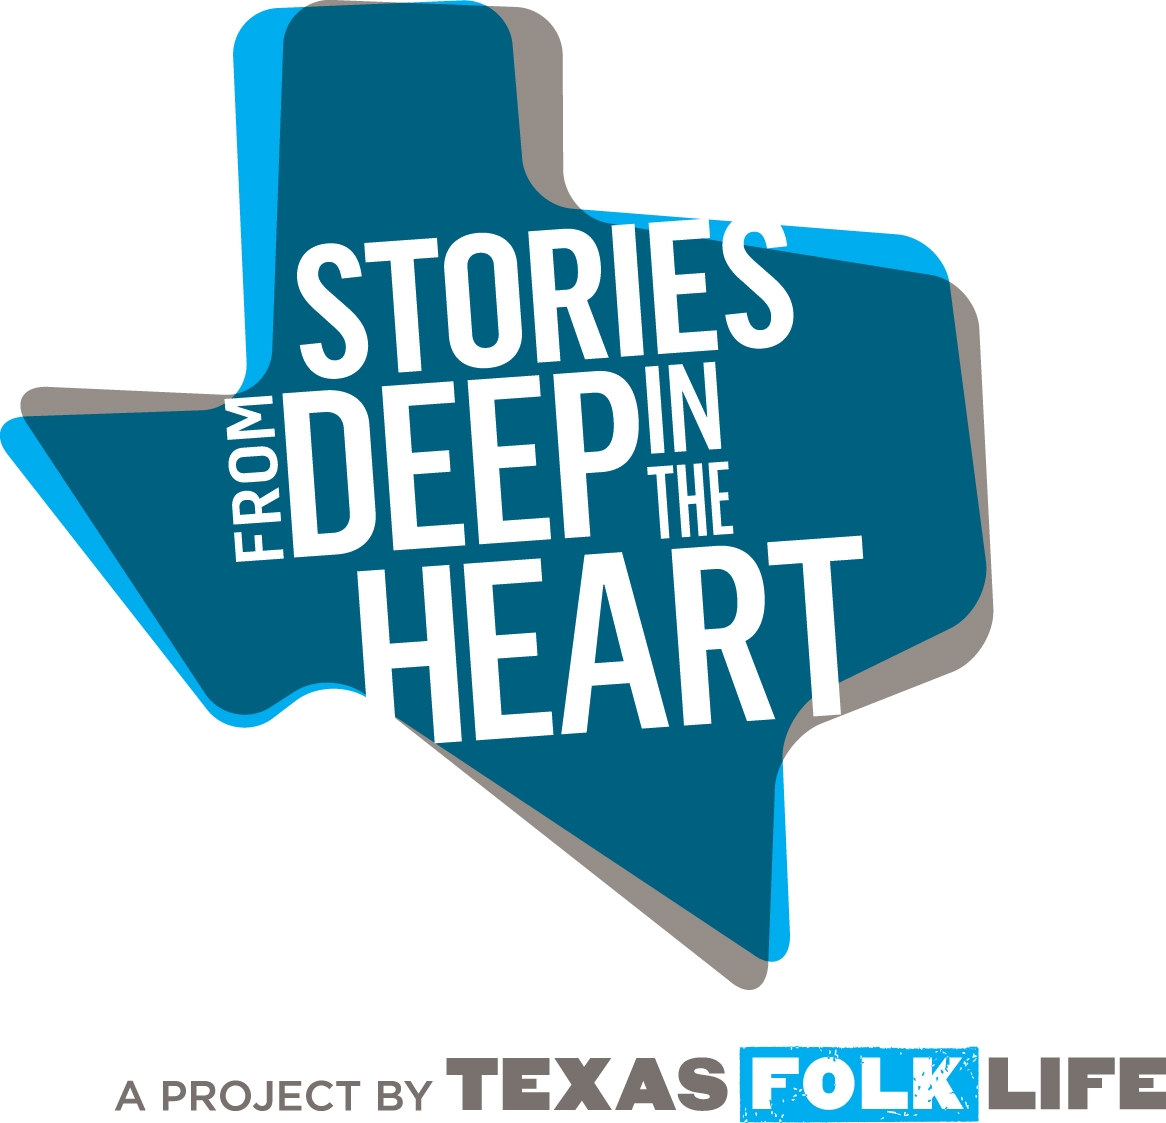 Caption: Stories Deep in the Heart